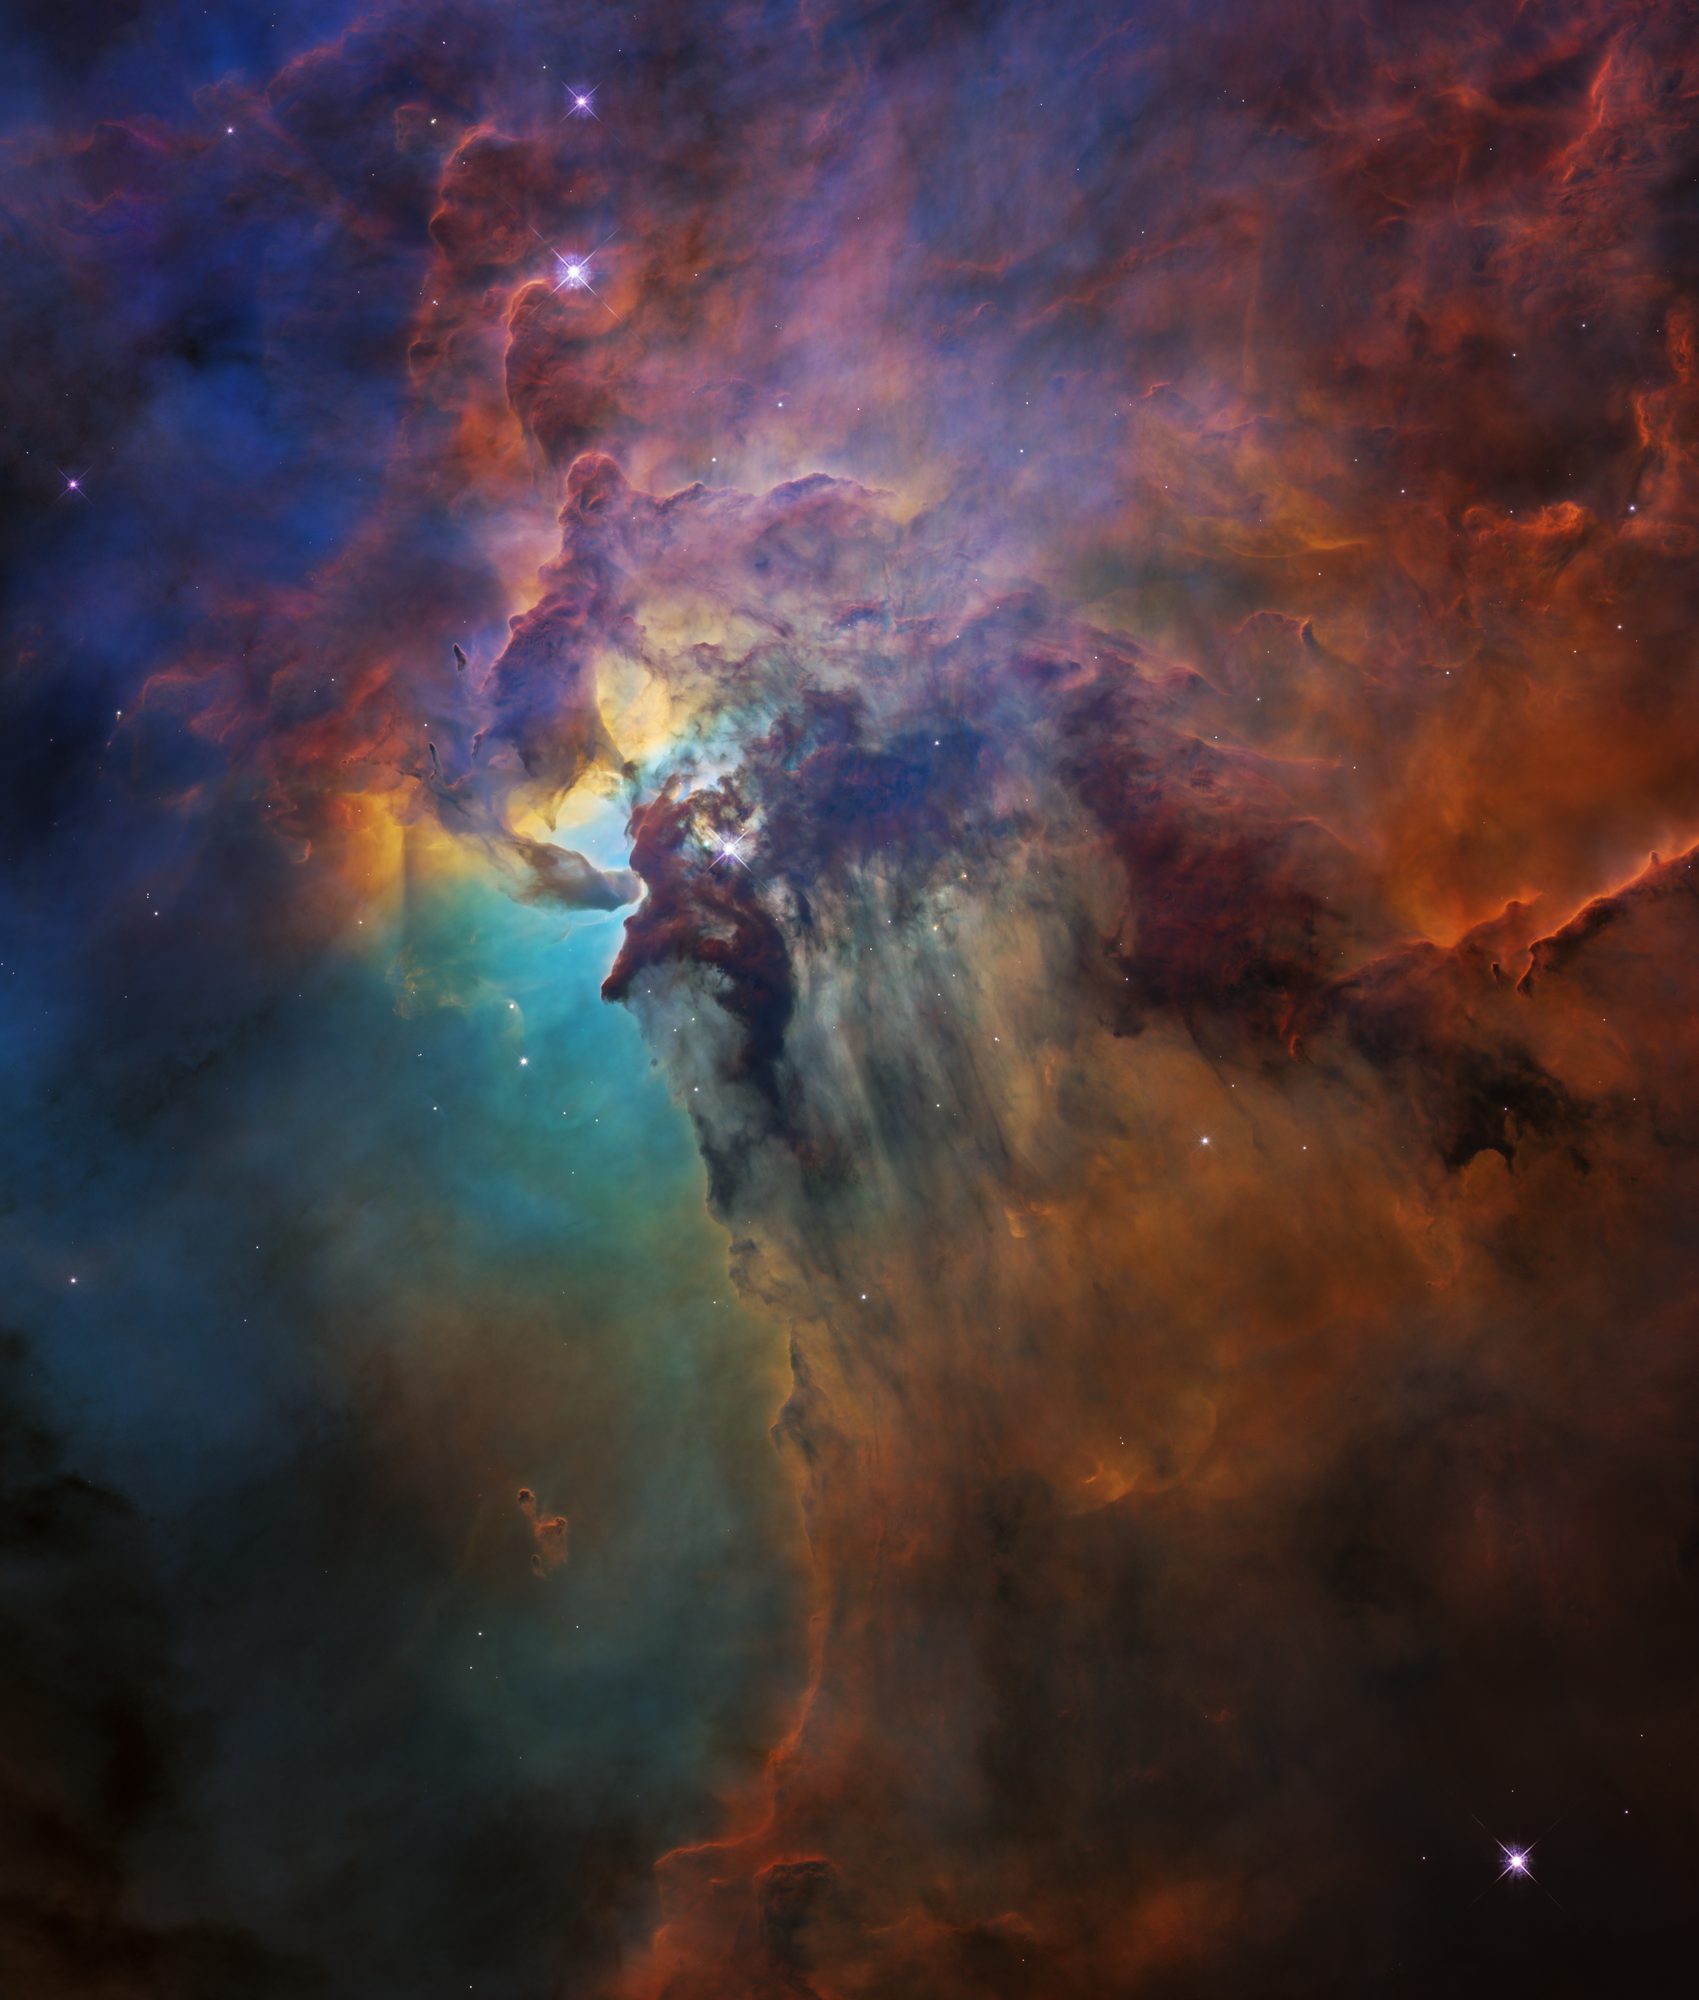 Celebrating 28 Years of the Hubble Space Telescope | NASA